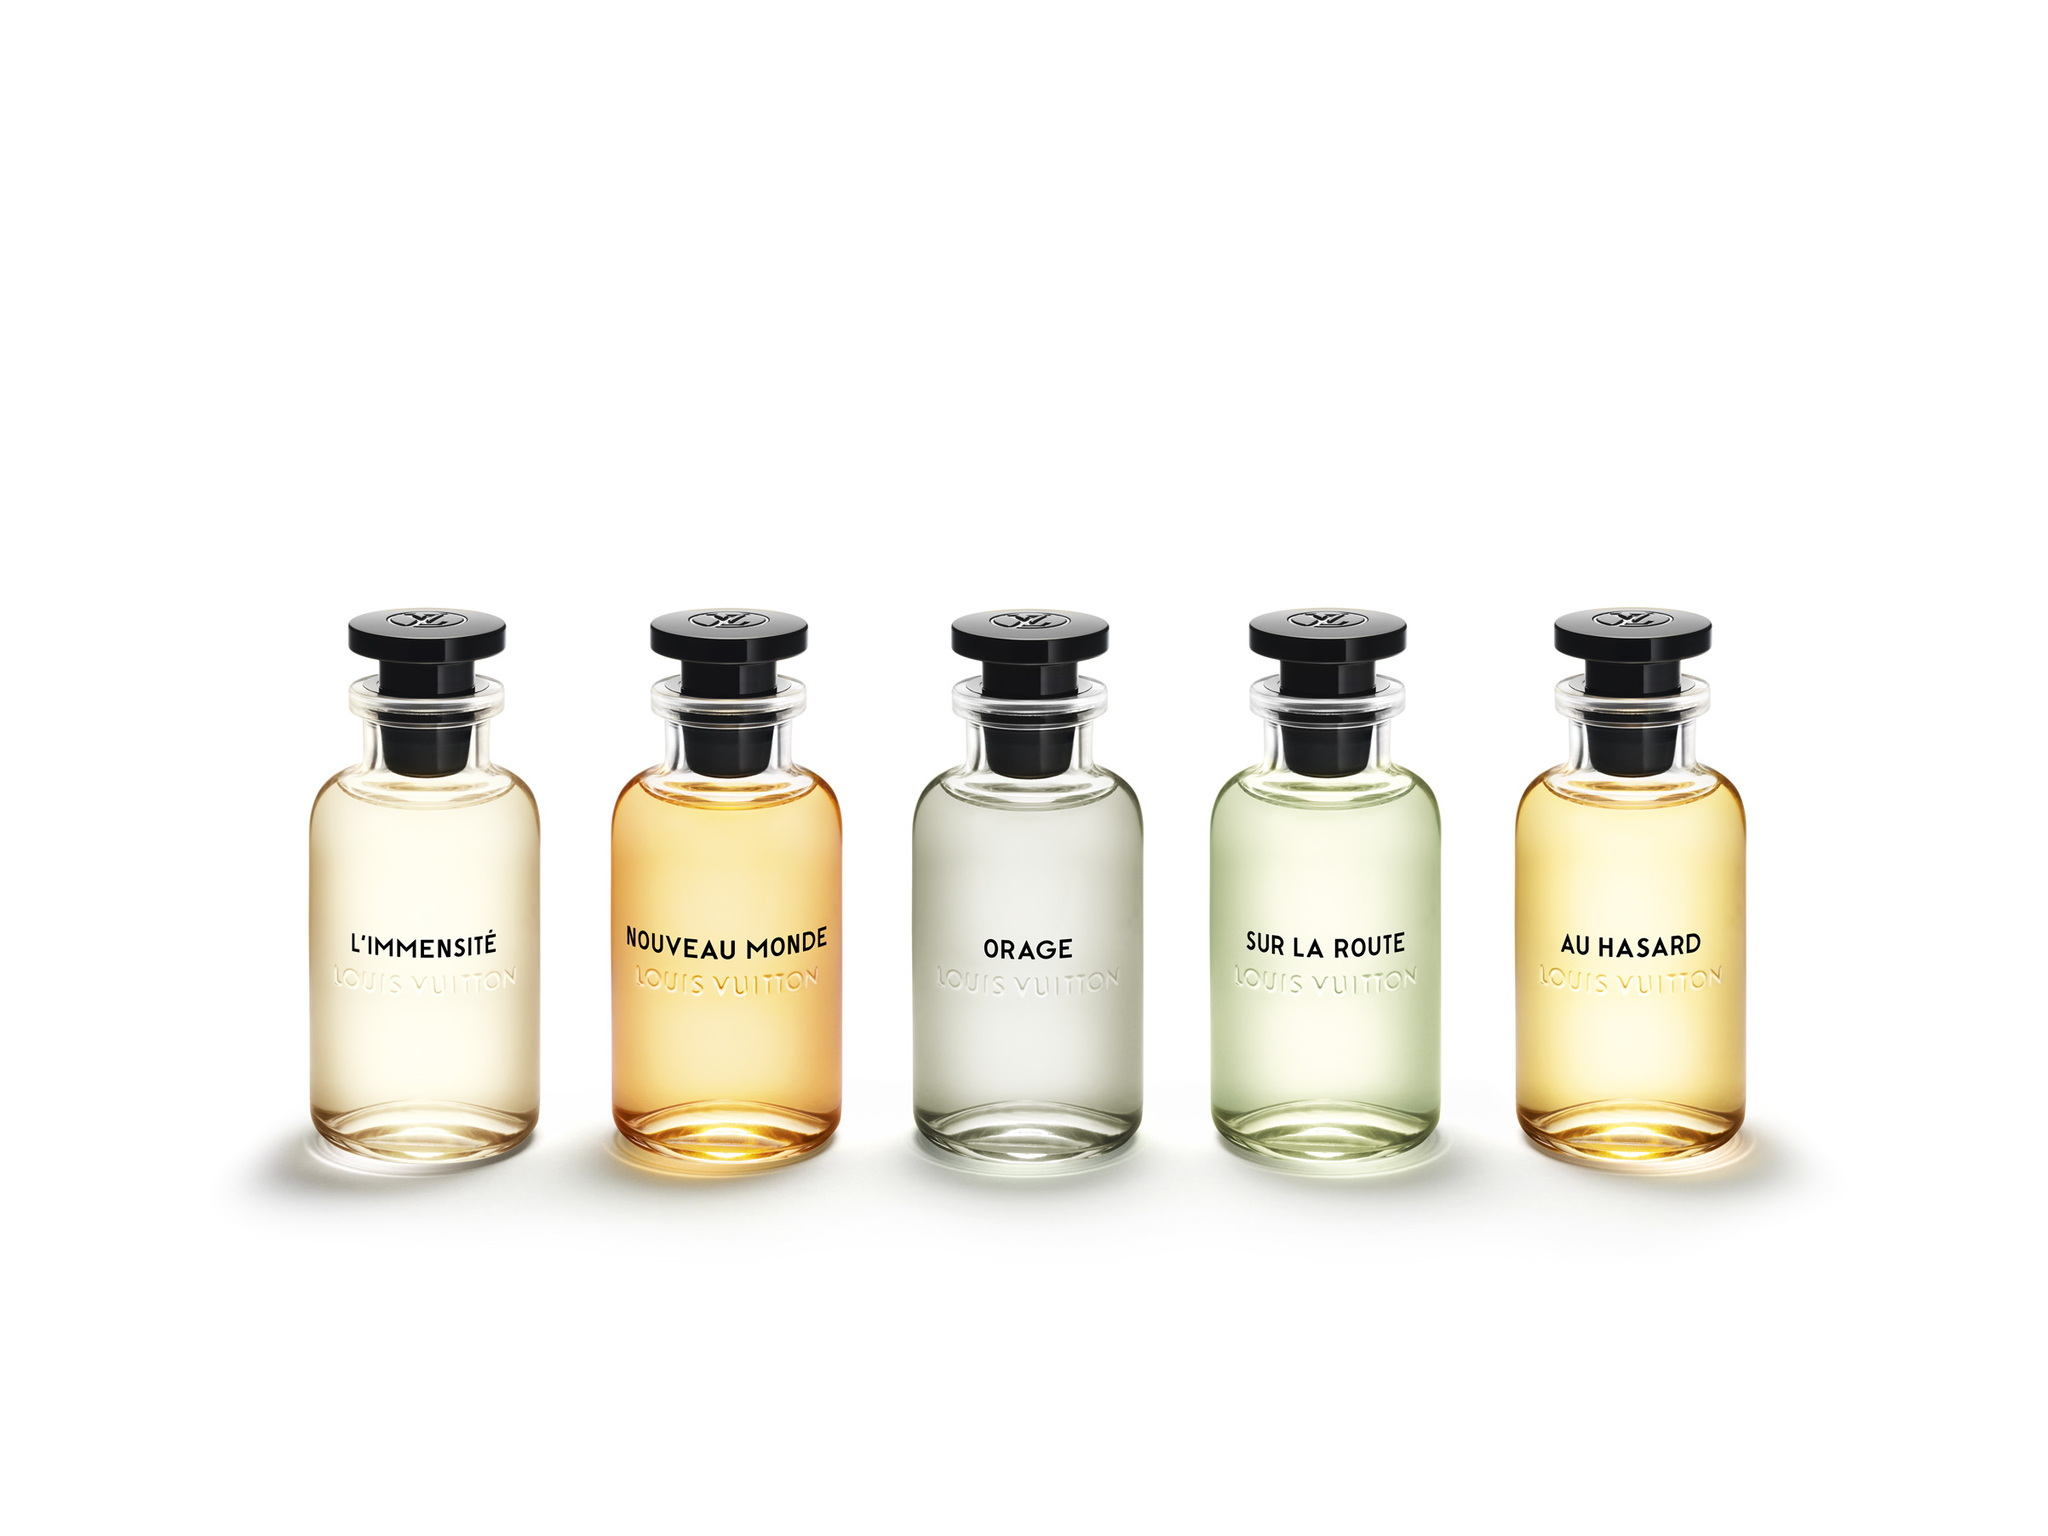 Louis Vuitton embraces adventure with first-ever men's fragrance collection